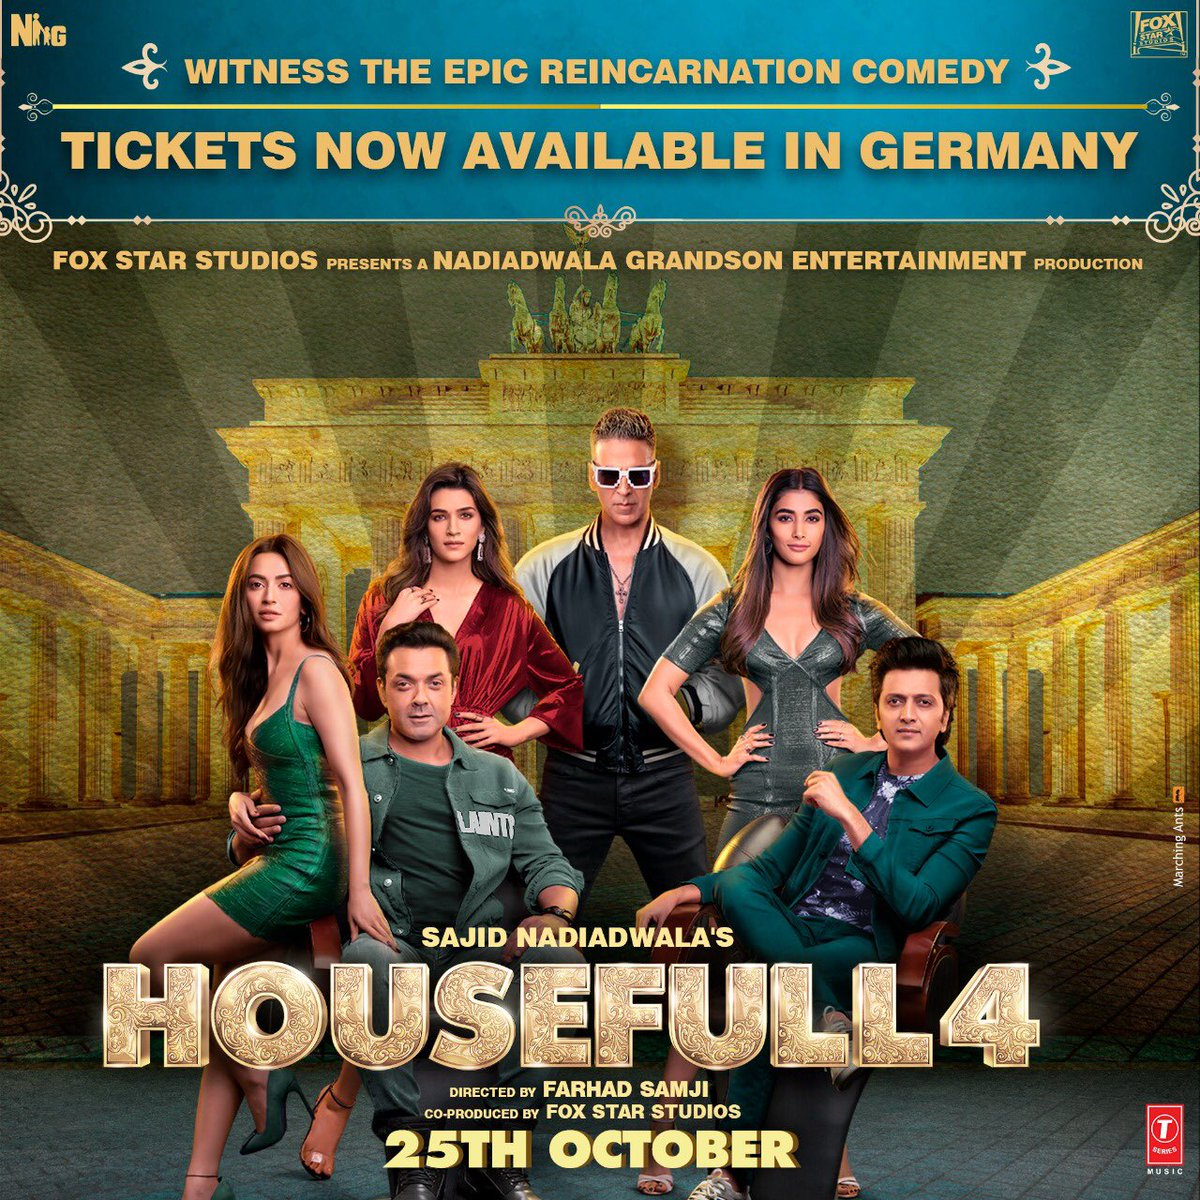 People of Germany get ready for an epic reincarnation comedy. Book your tickets for #Housefull4 and be a part of this hilarious journey. mykinoplex.com